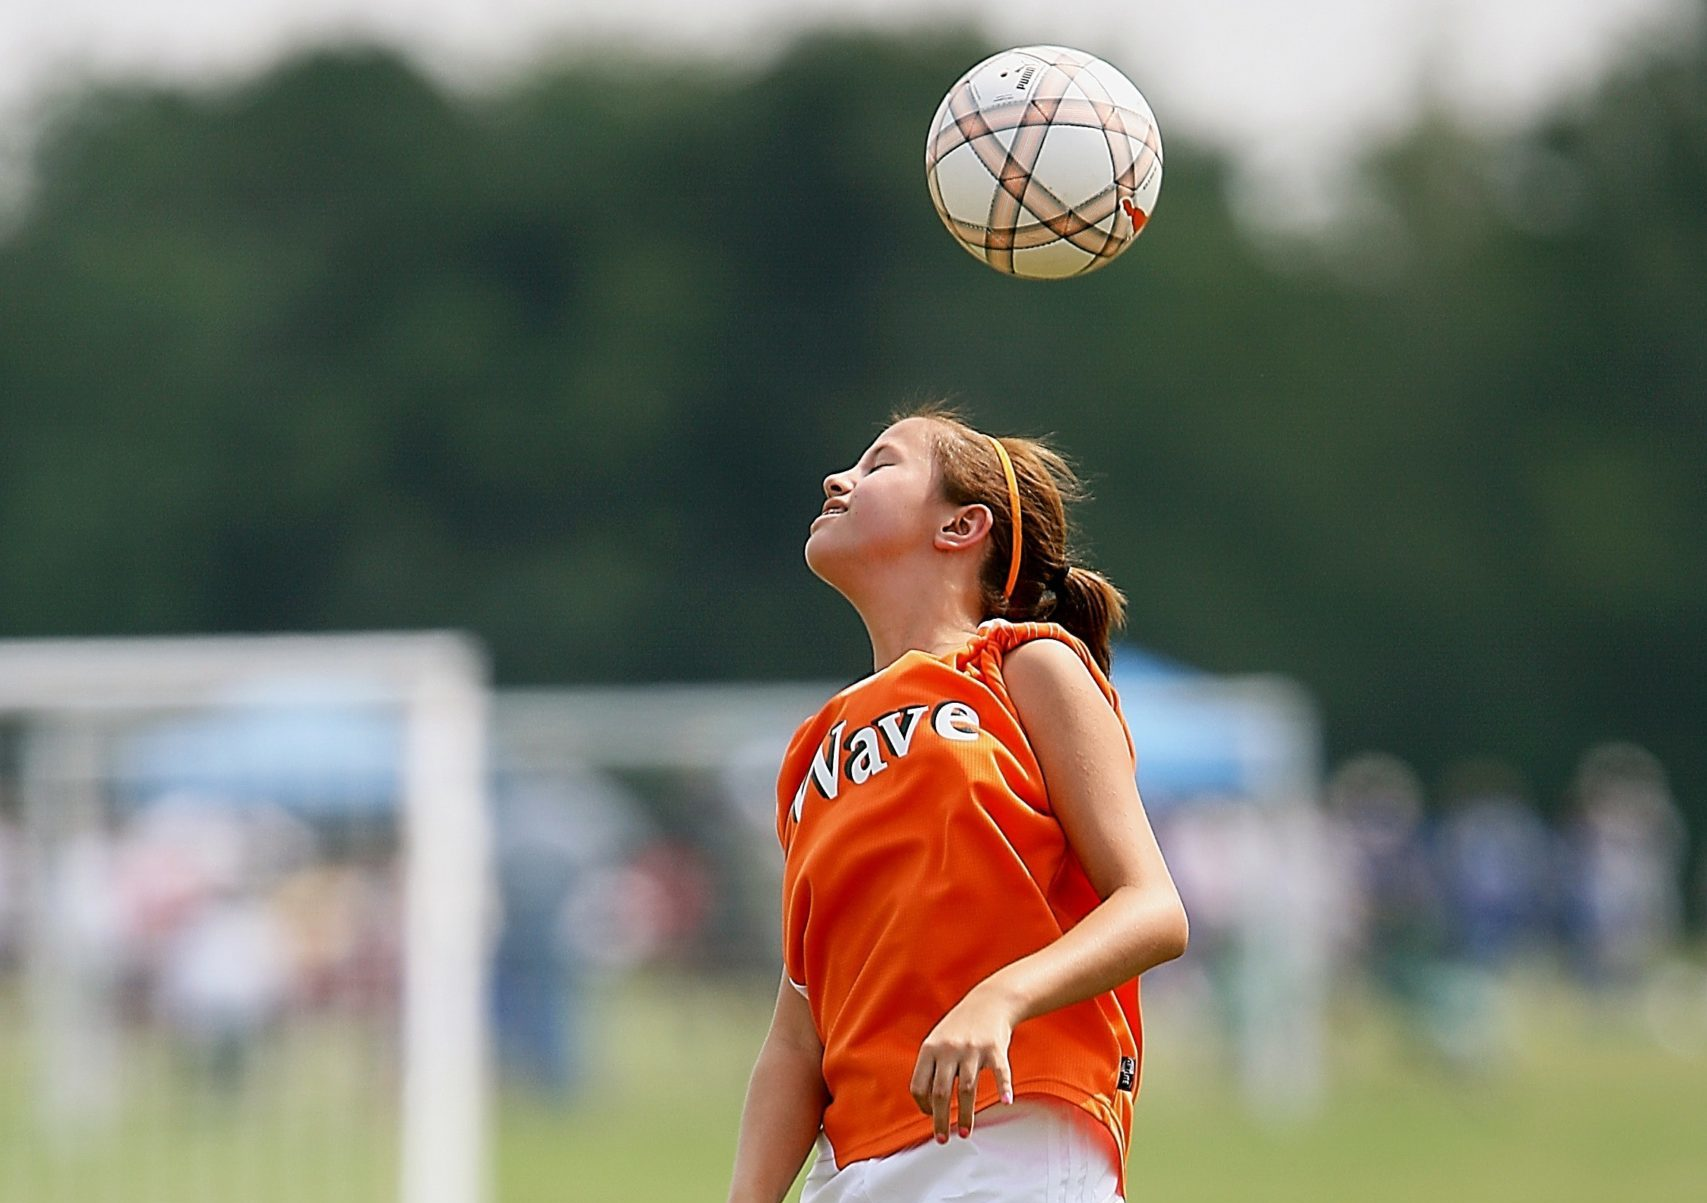 If you and your kids happen to go through a sports injury, see what our urgent care can do for you.